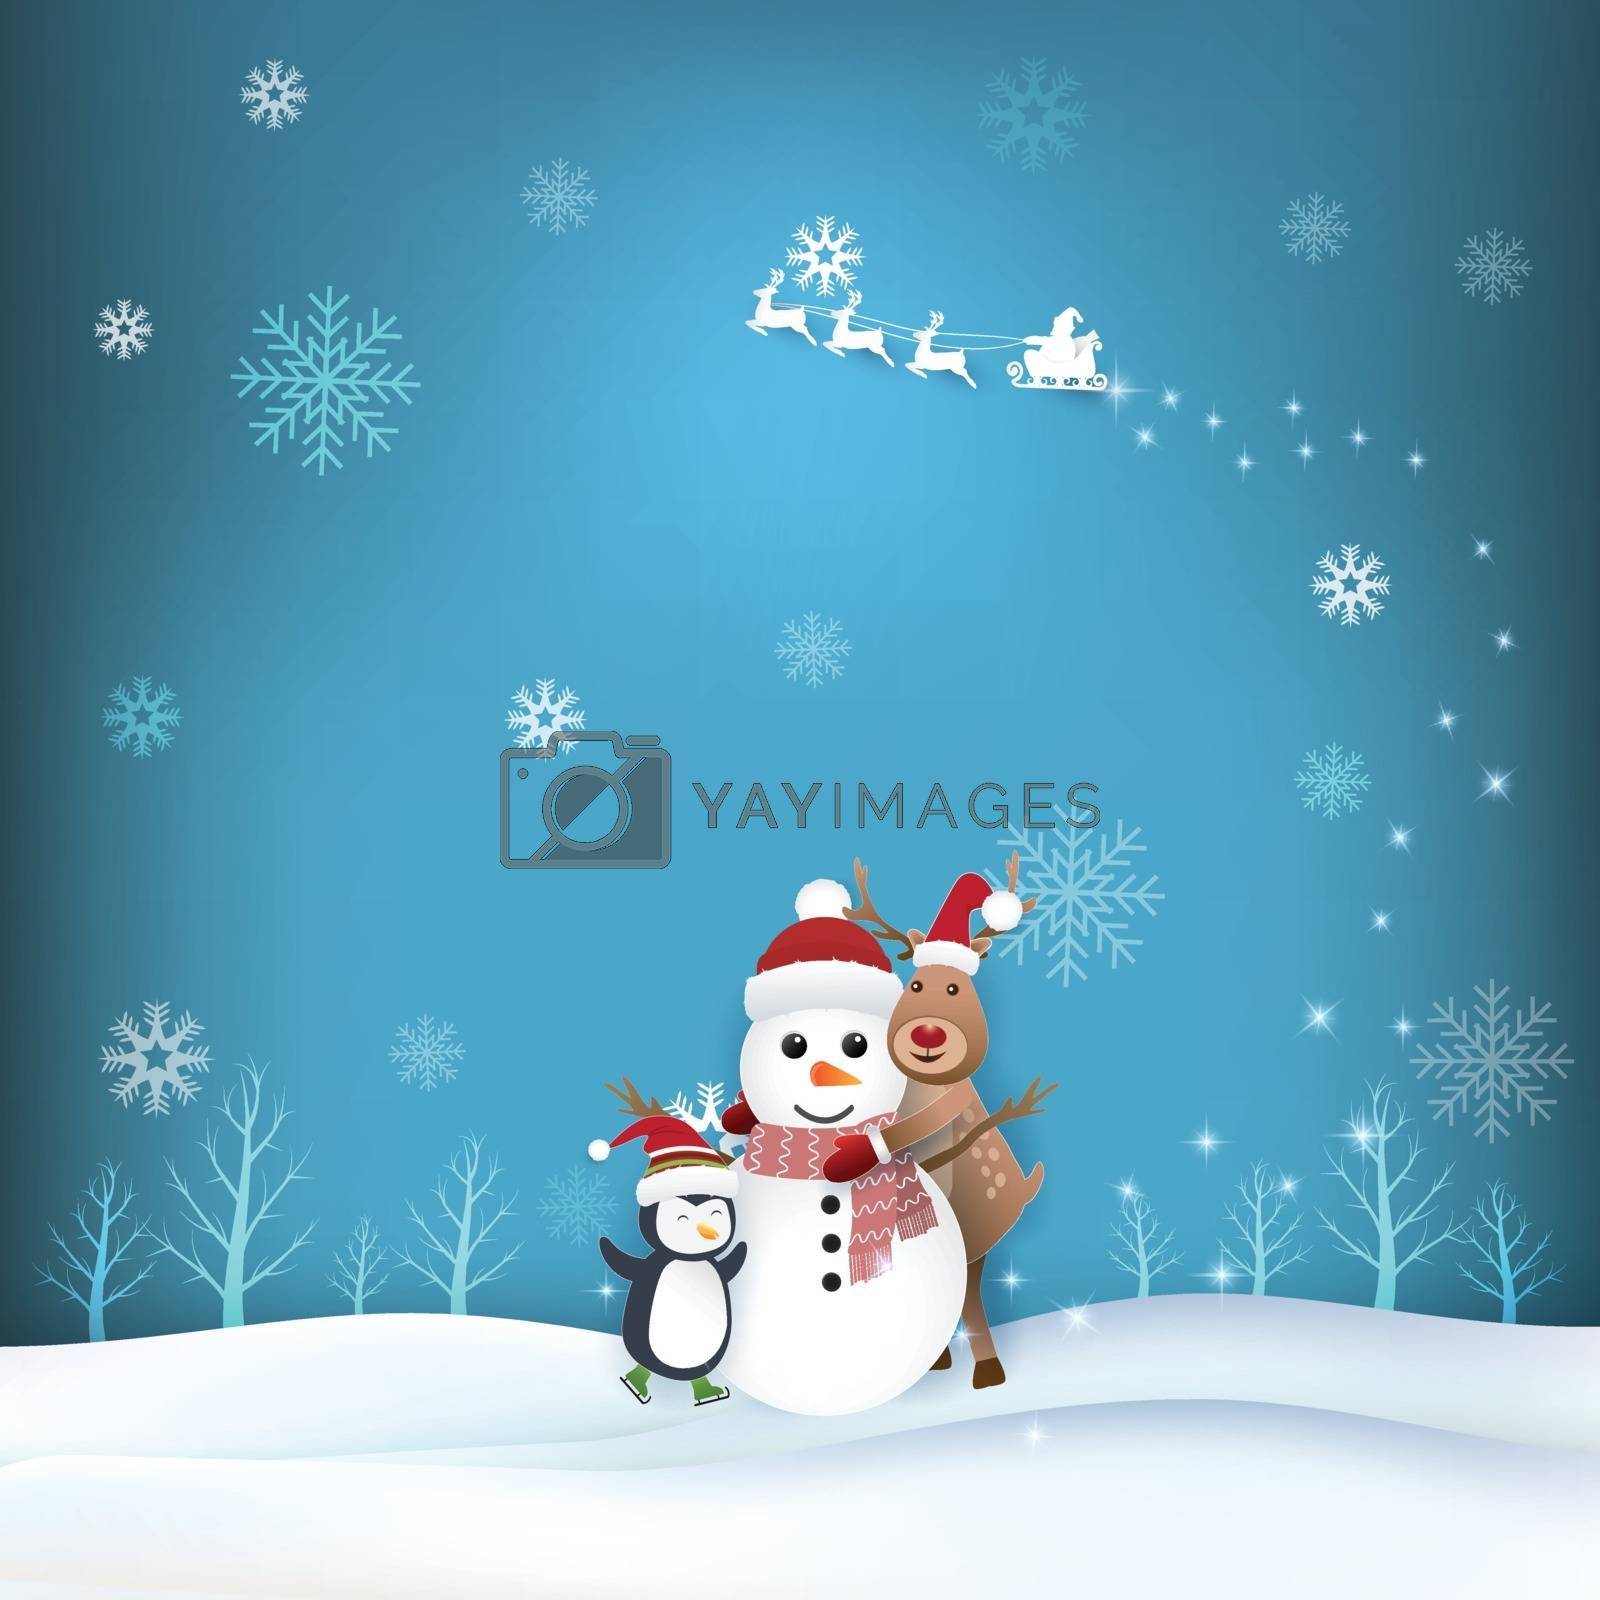 Snowman, Deer and penguin in winter season paper art, paper craft style illustration